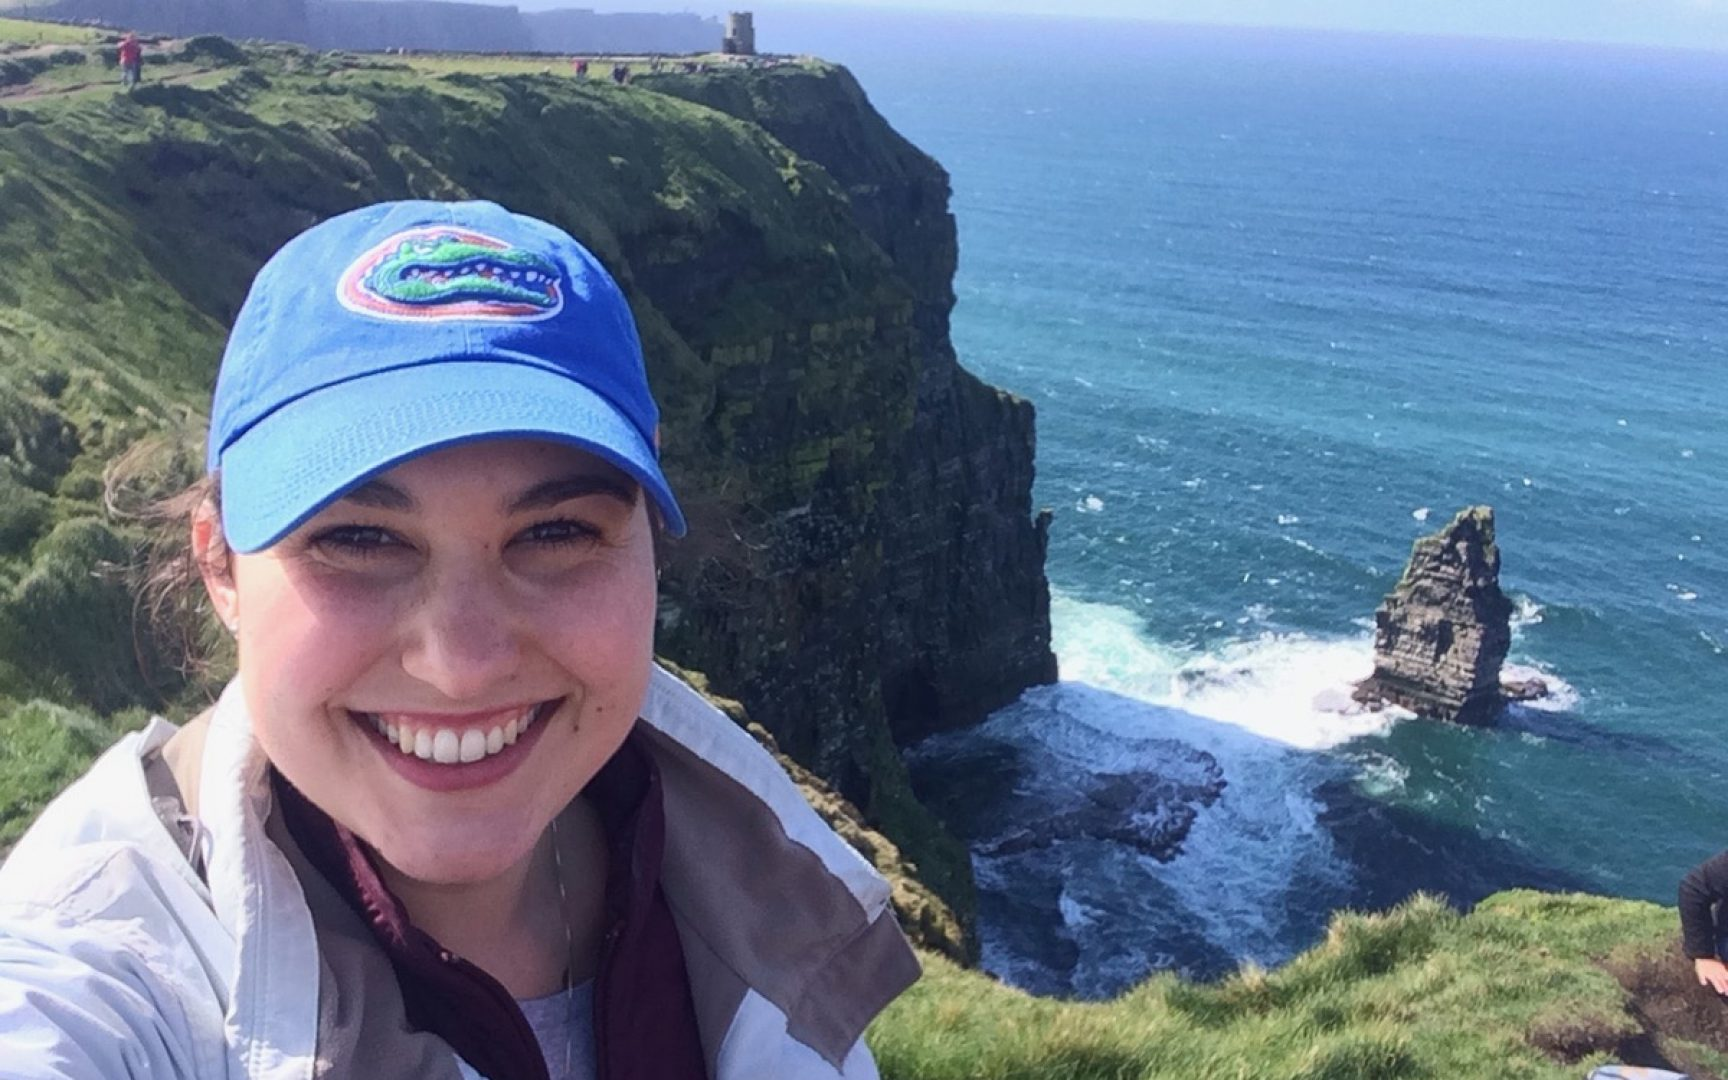 Nelly Wilson takes a selfie at the Cliffs of Moher in Ireland